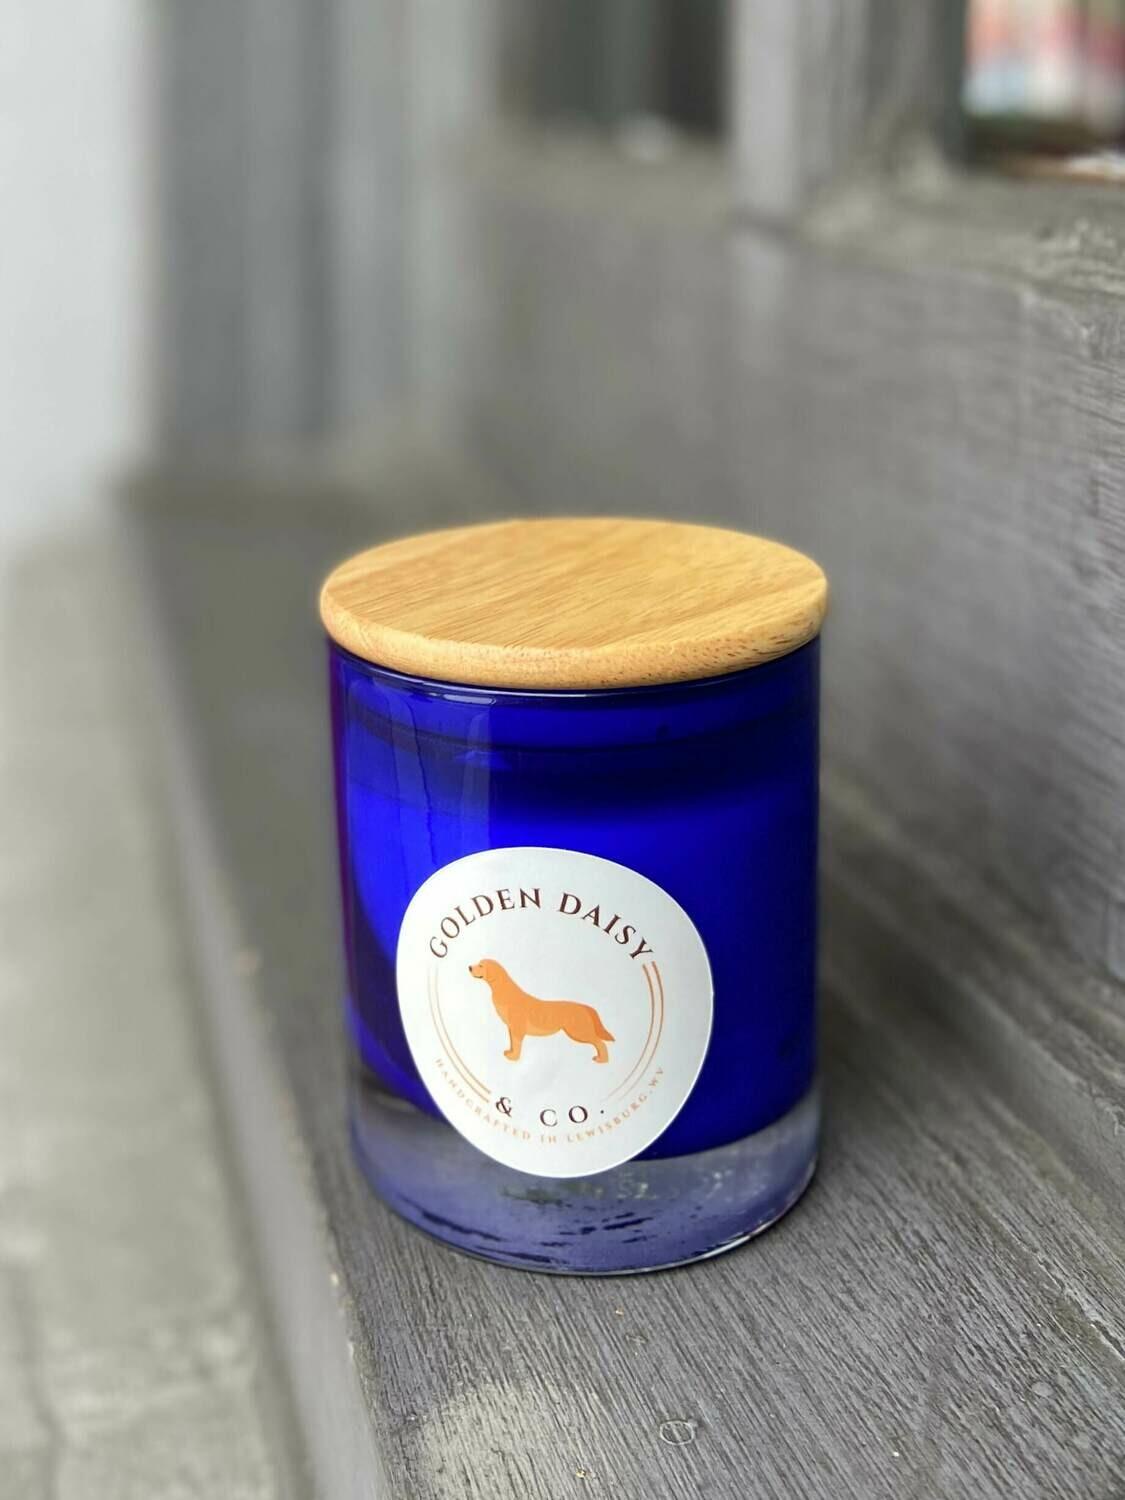 Golden Daisy Bella Signature 8 oz. Candle - Cobalt with Wooden Lid